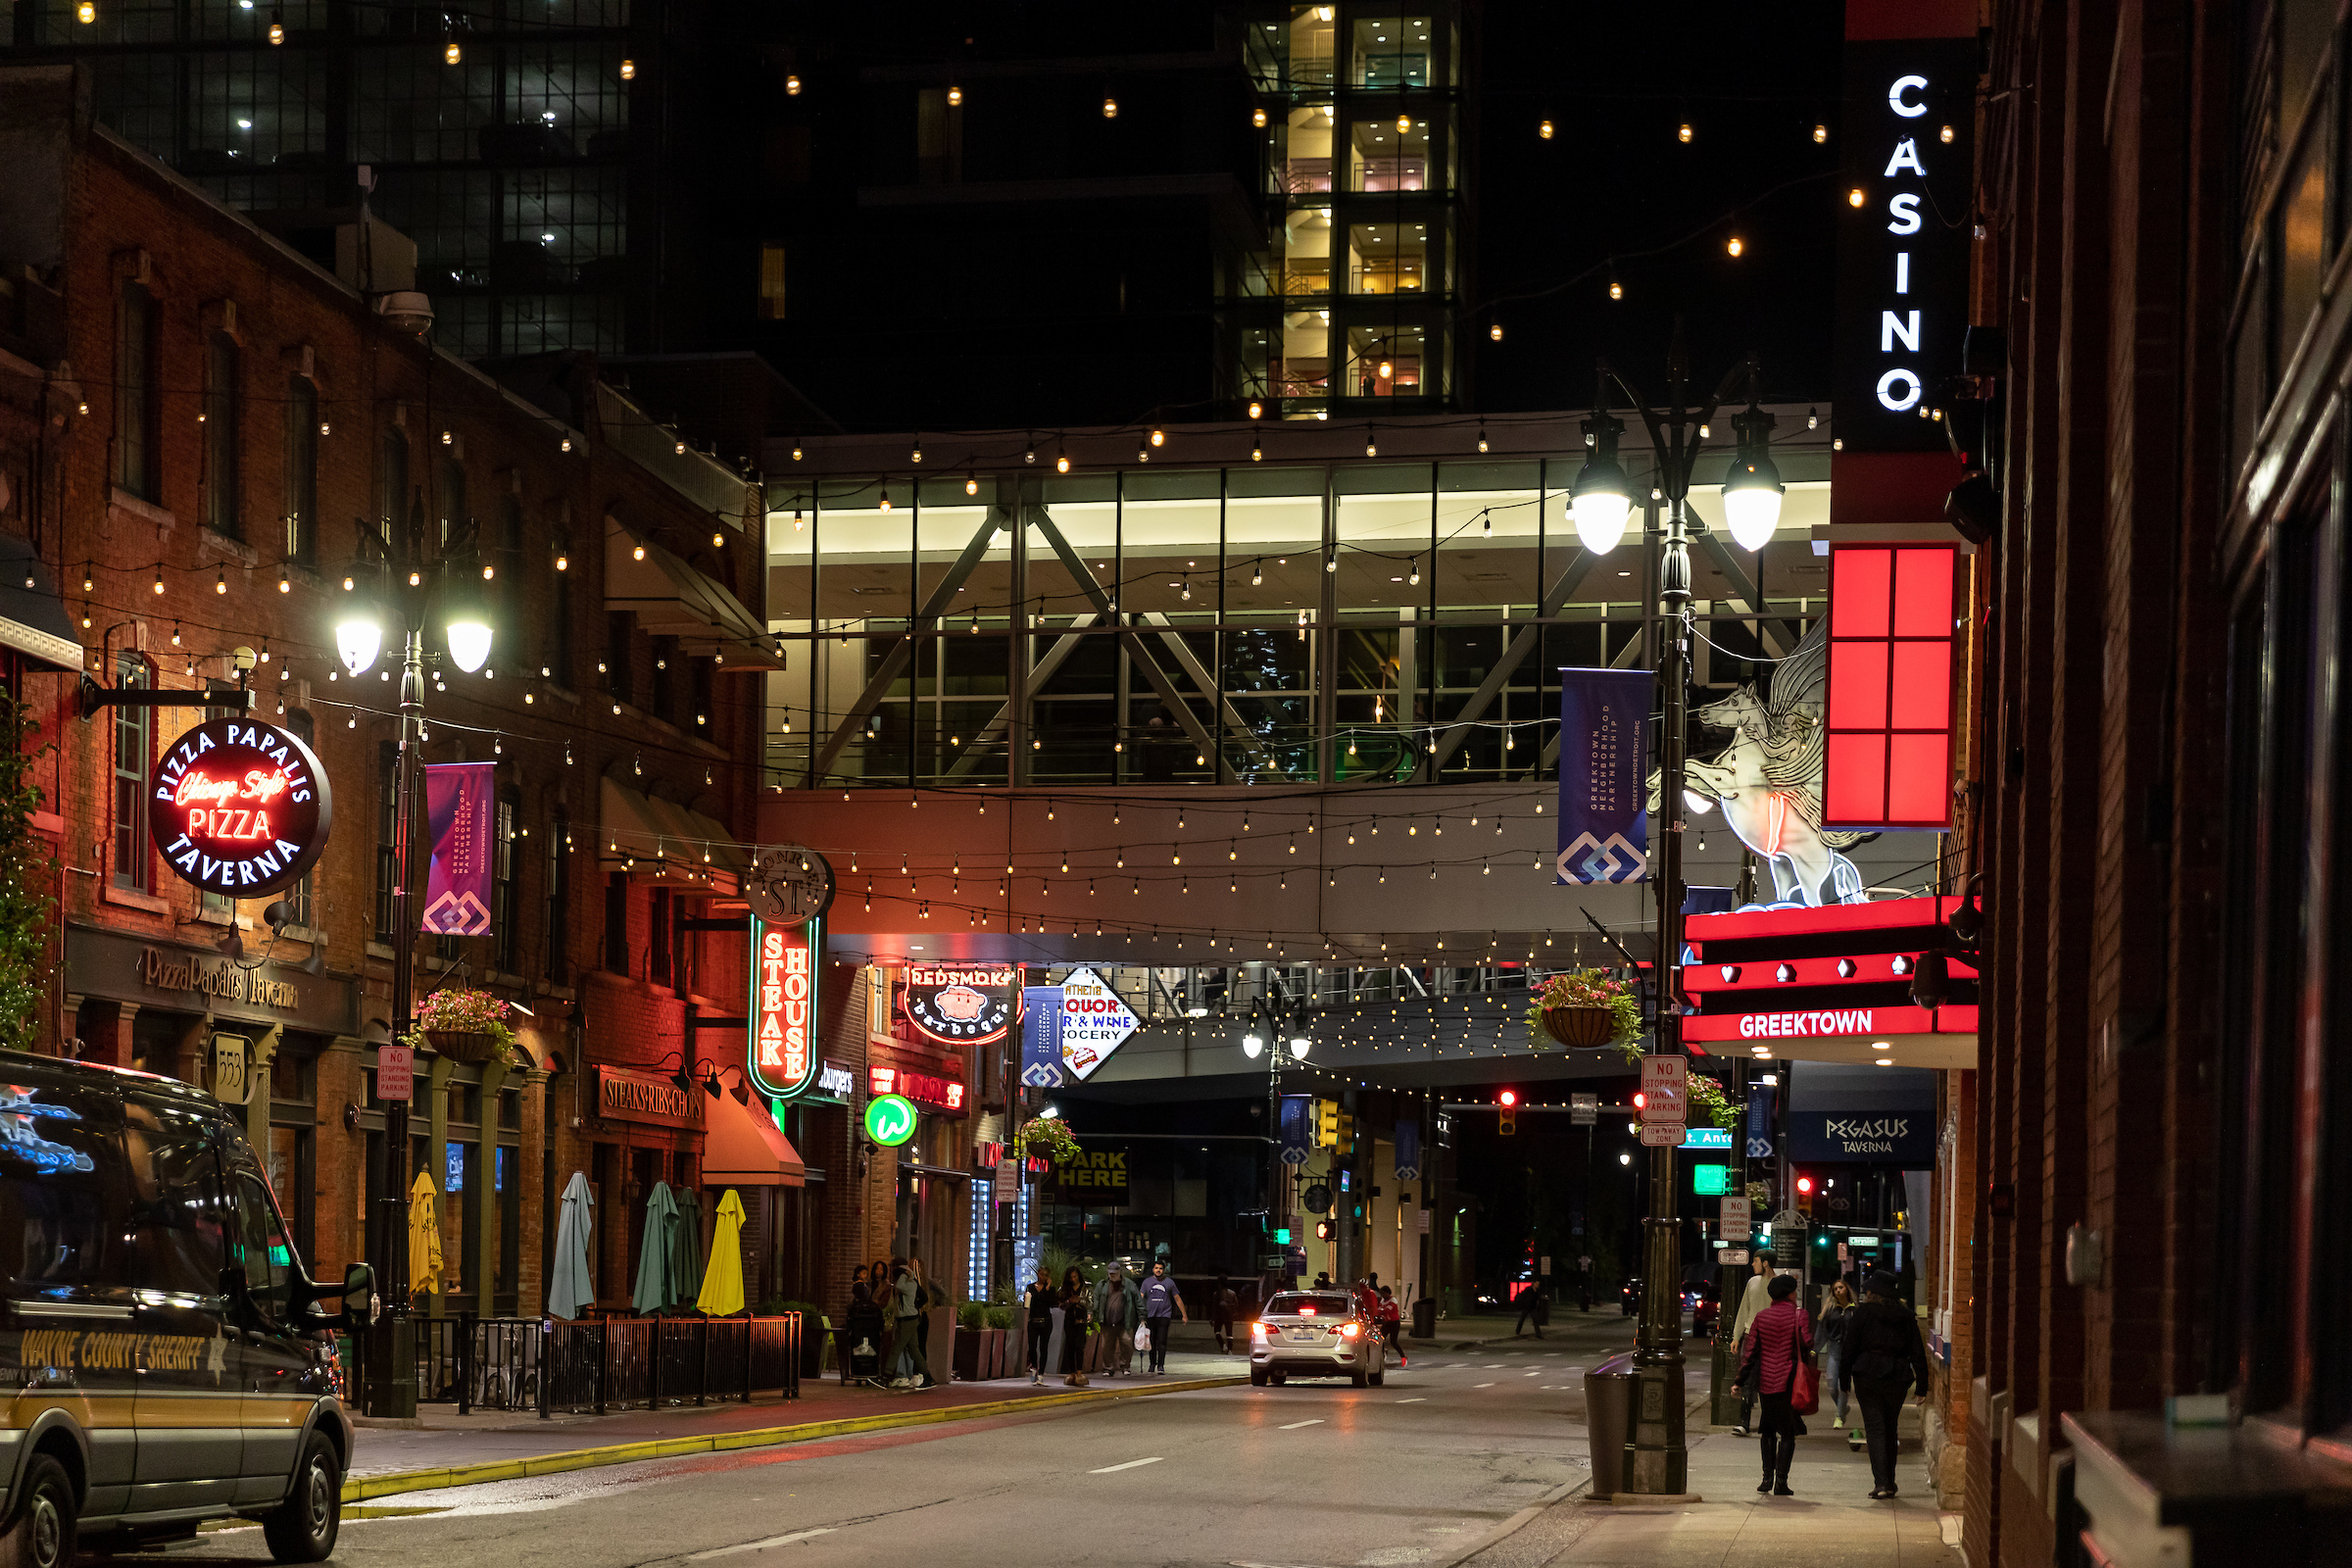 The Greektown entertainment district surrounding the Greektown Casino is shown at night with many restaurant and bar signs lit up and a sky walkway in the background leading to the casino floor.